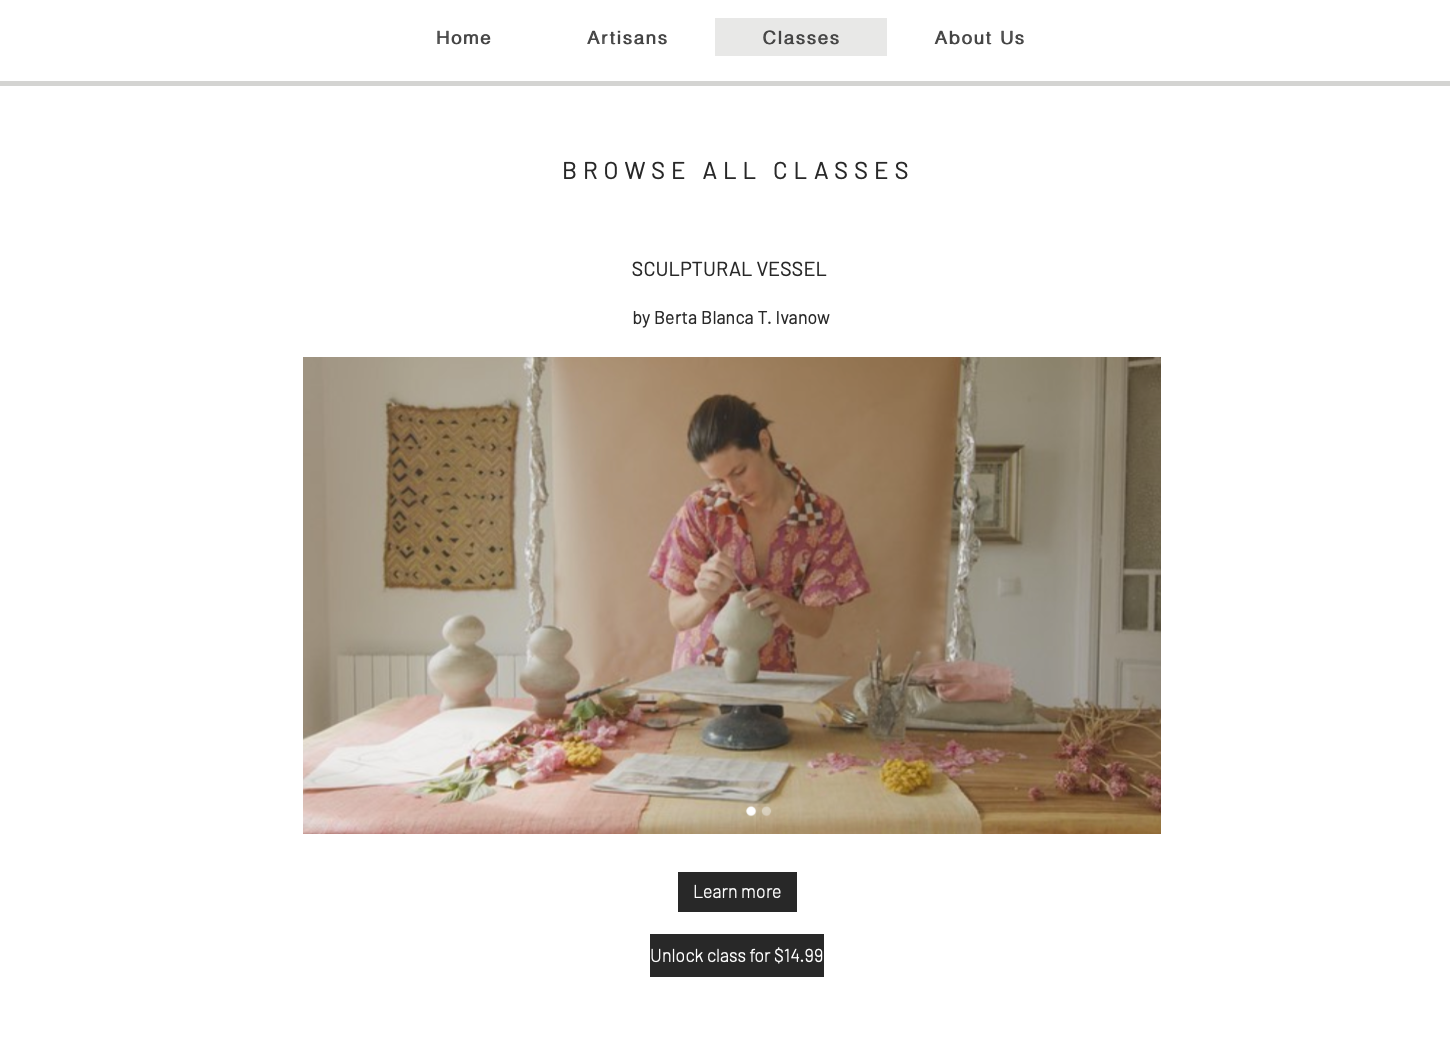 The classes tab on our website: learn from passionate artisans and creative people at affordable prices